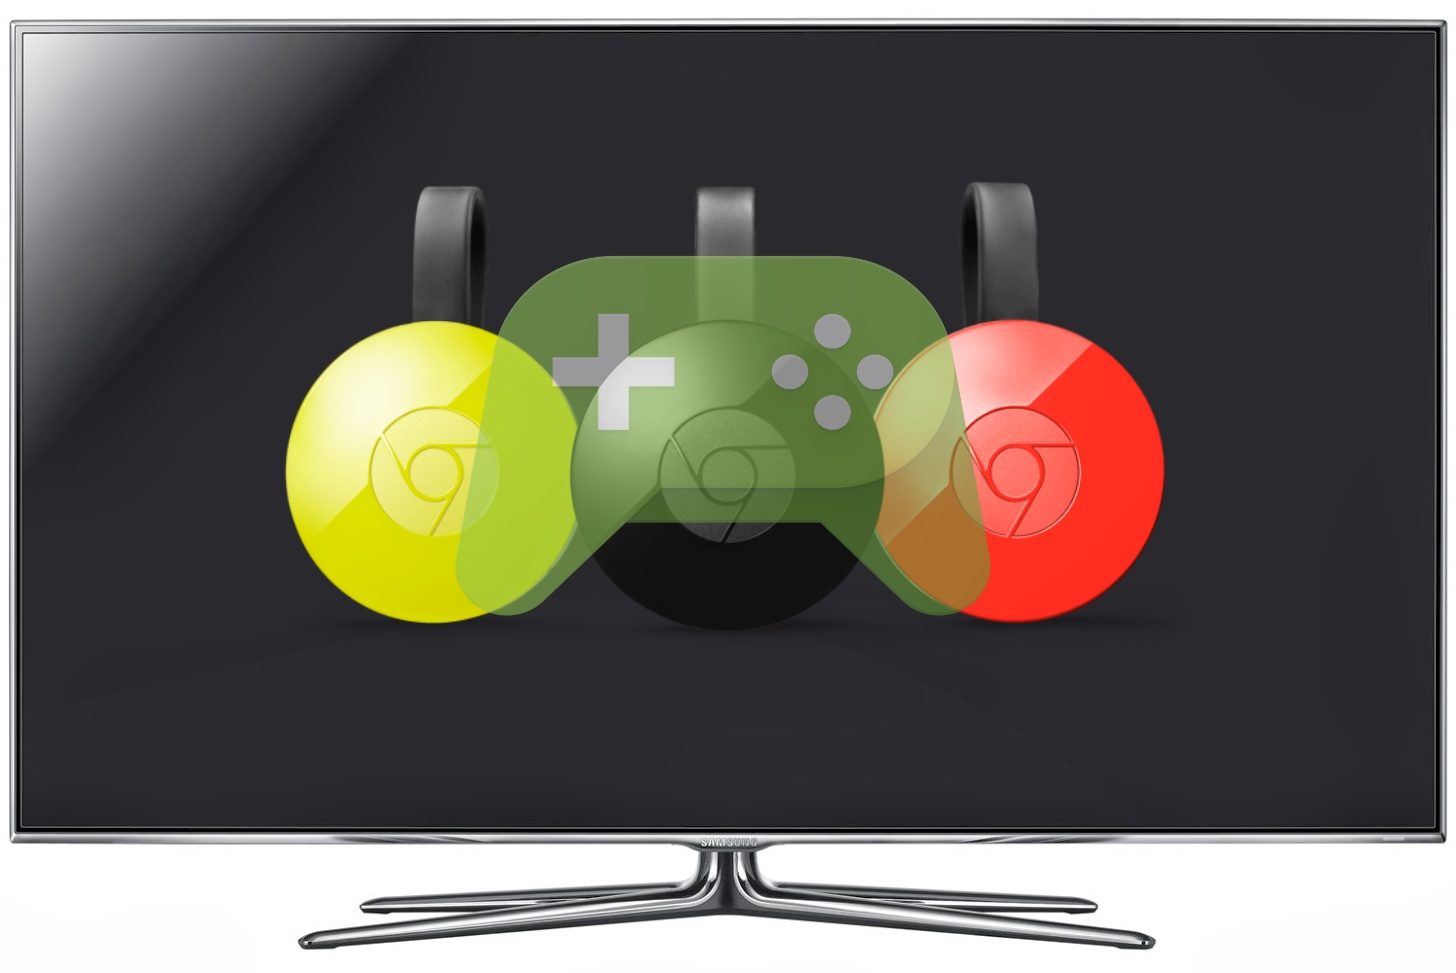 10 great Android games you can play on your TV with Chromecast